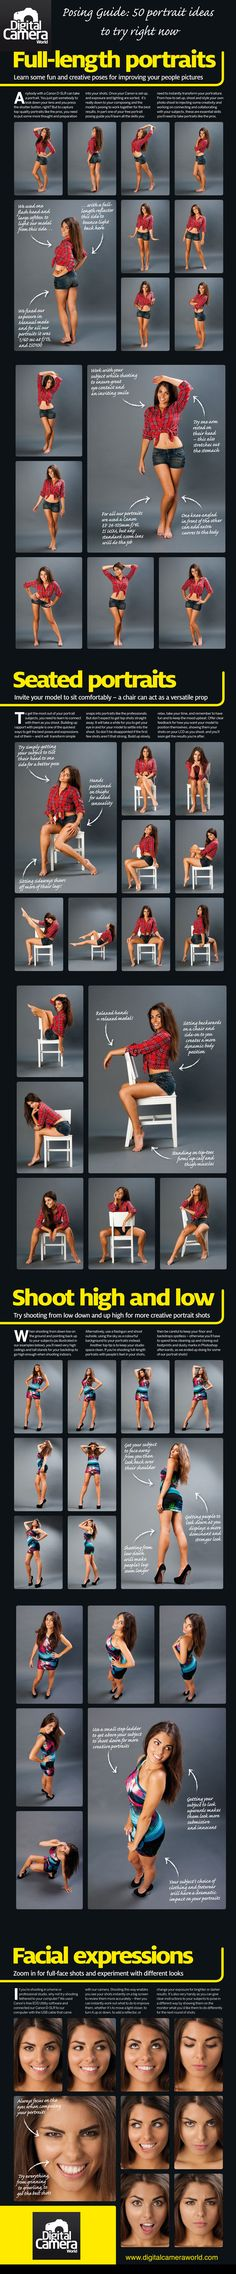 50_Portrait_Ideas_Posing_Guide_NEW